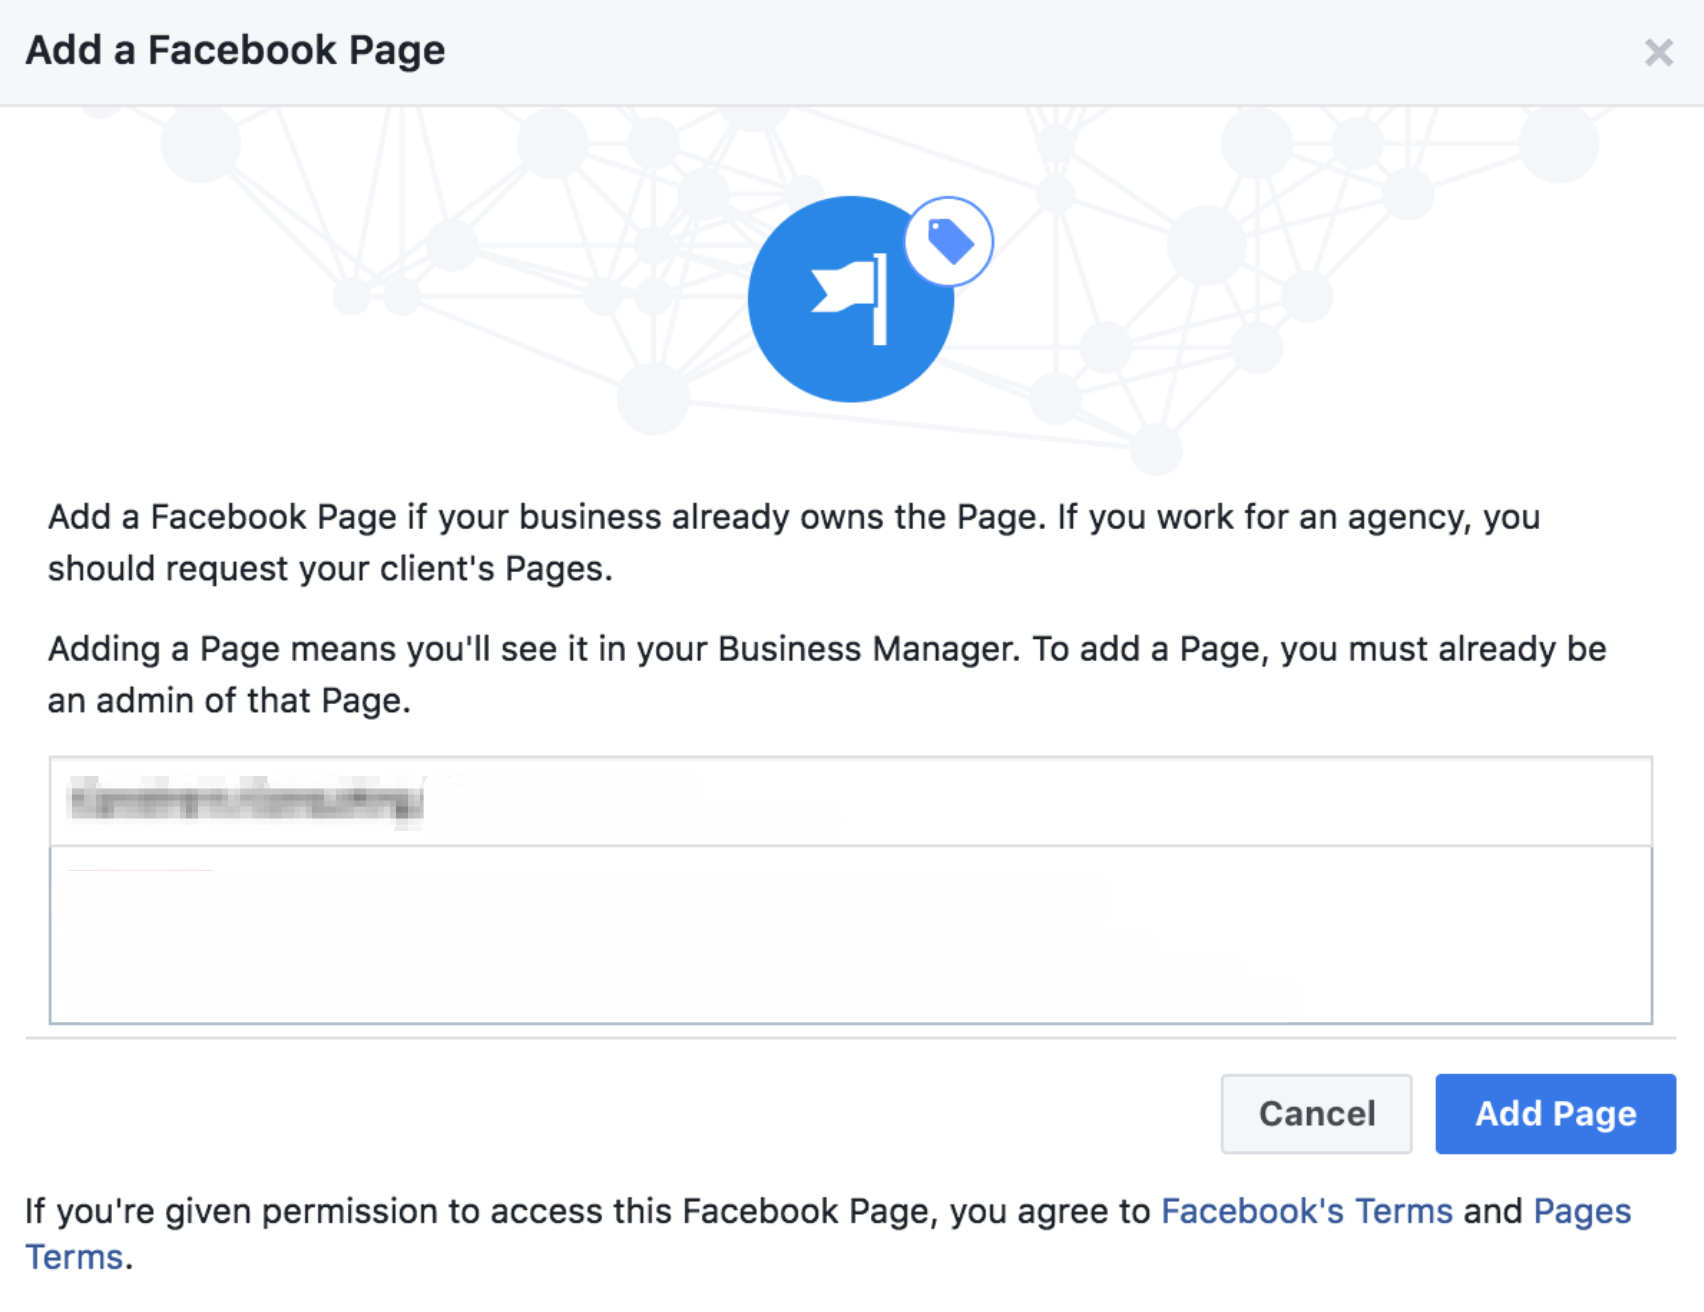 facebook business manager add facebook page